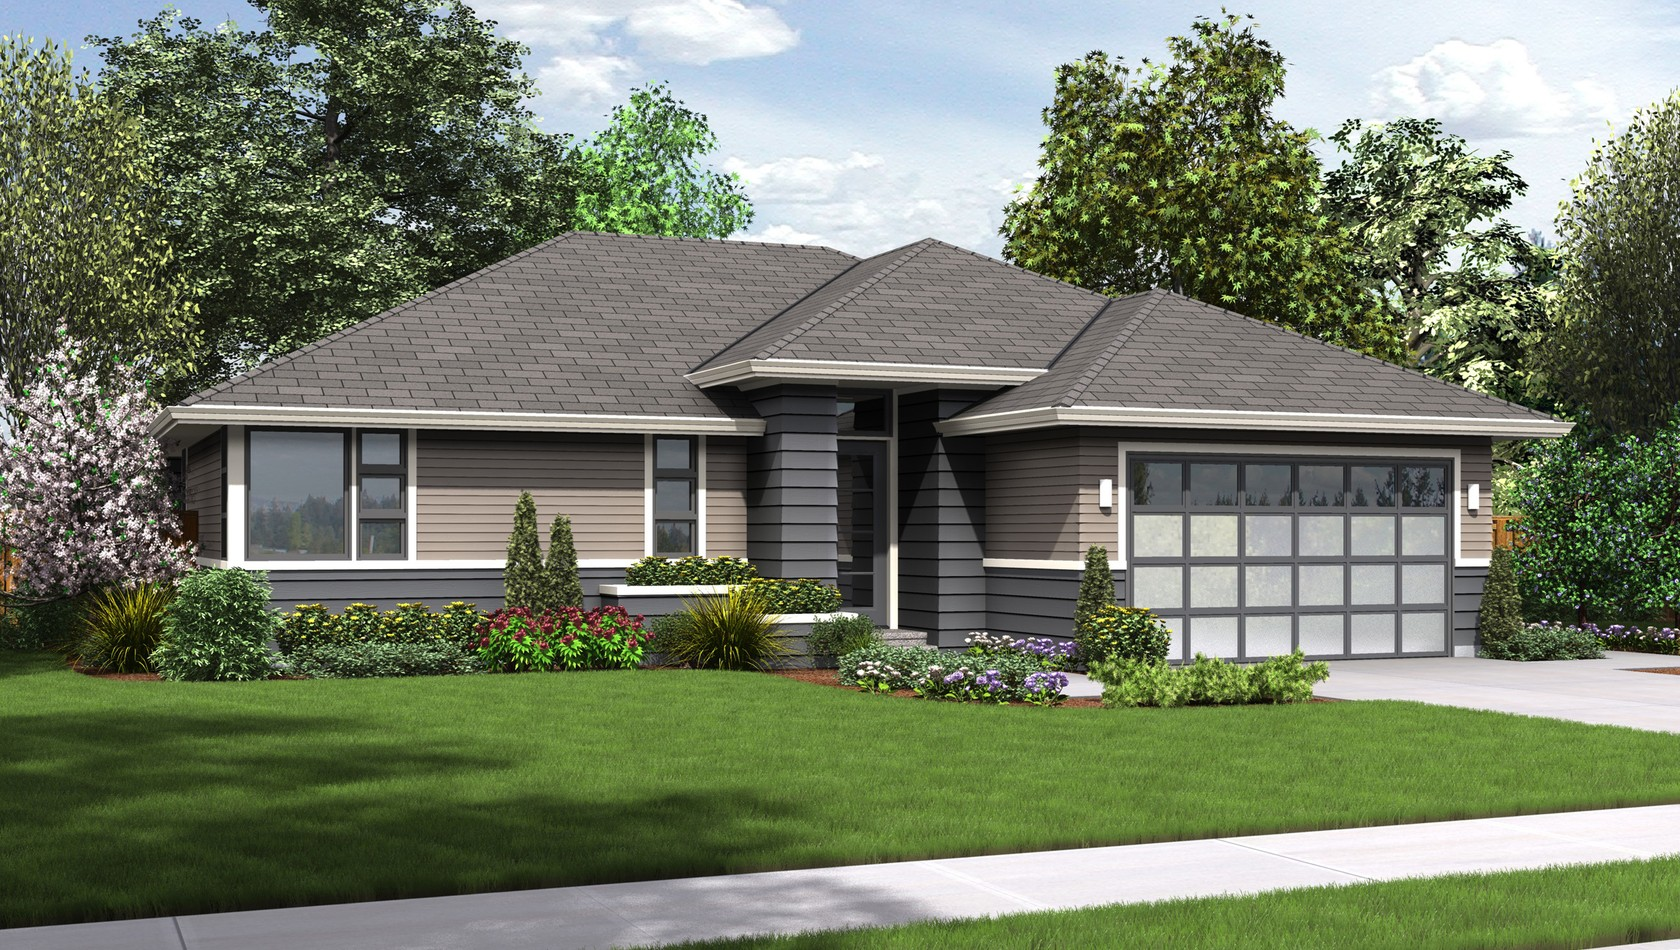 Main image for house plan 1169ES: The Modern Ranch